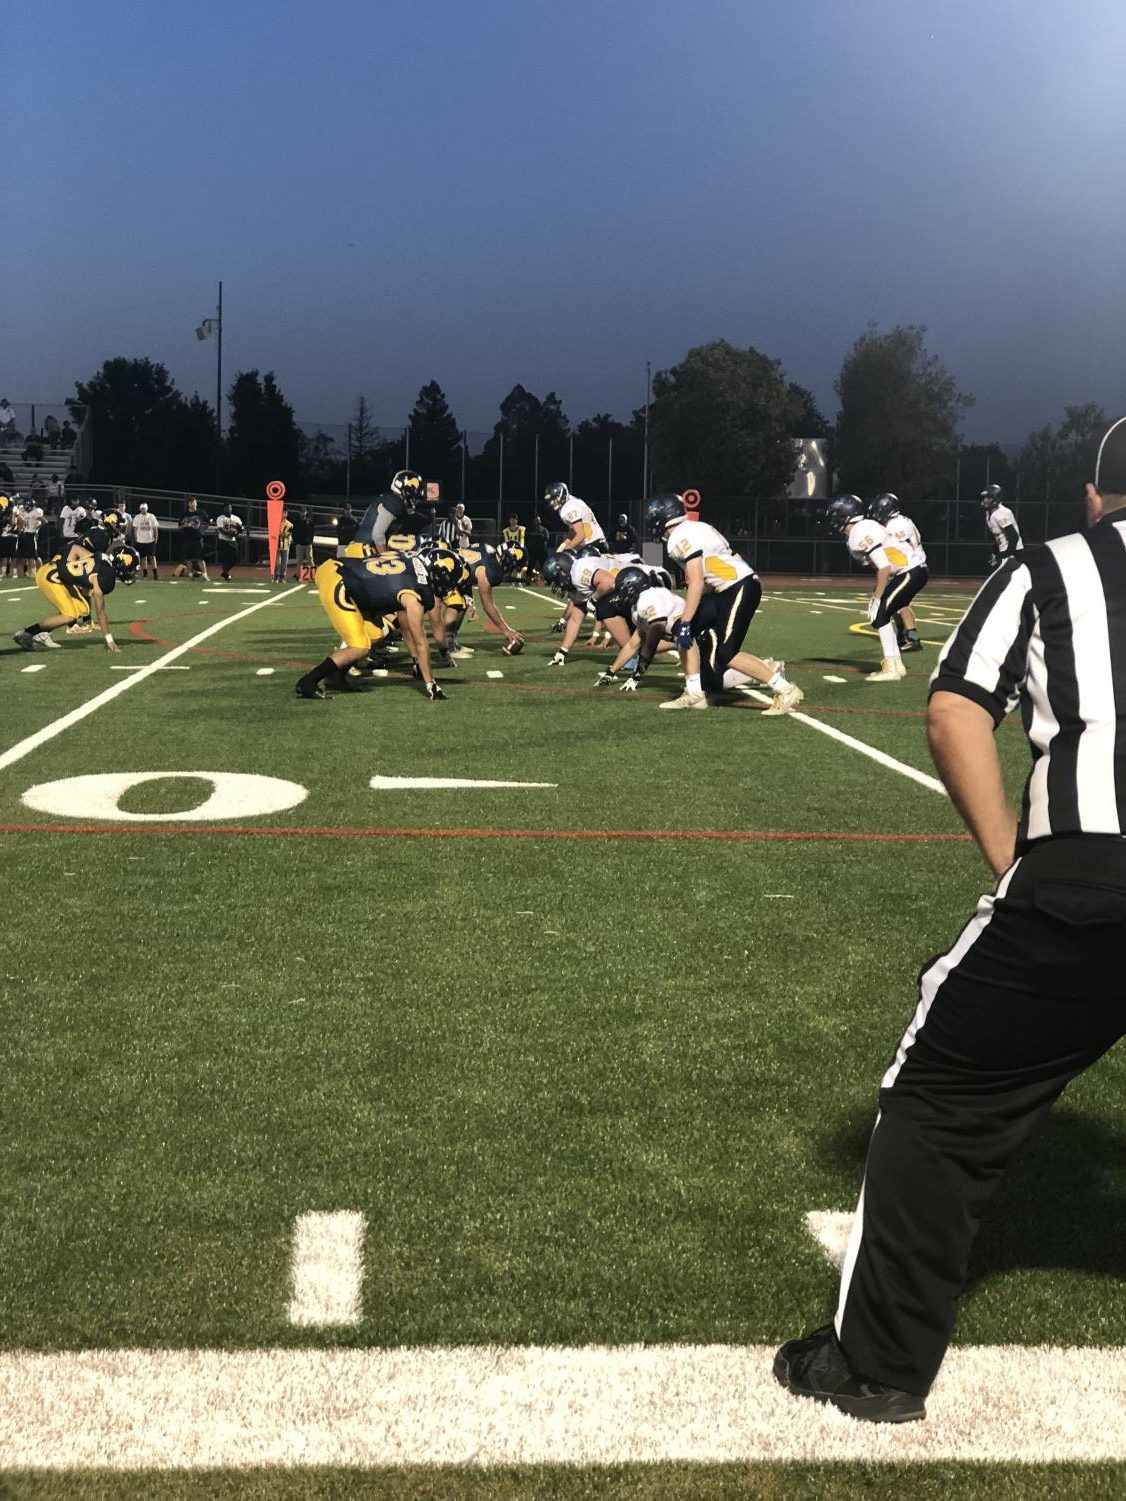 Lions vs Leland September 21, 2018.  Lincoln won the game 48-28. (Anastasia Cervantes / Lincoln Lion Tales)